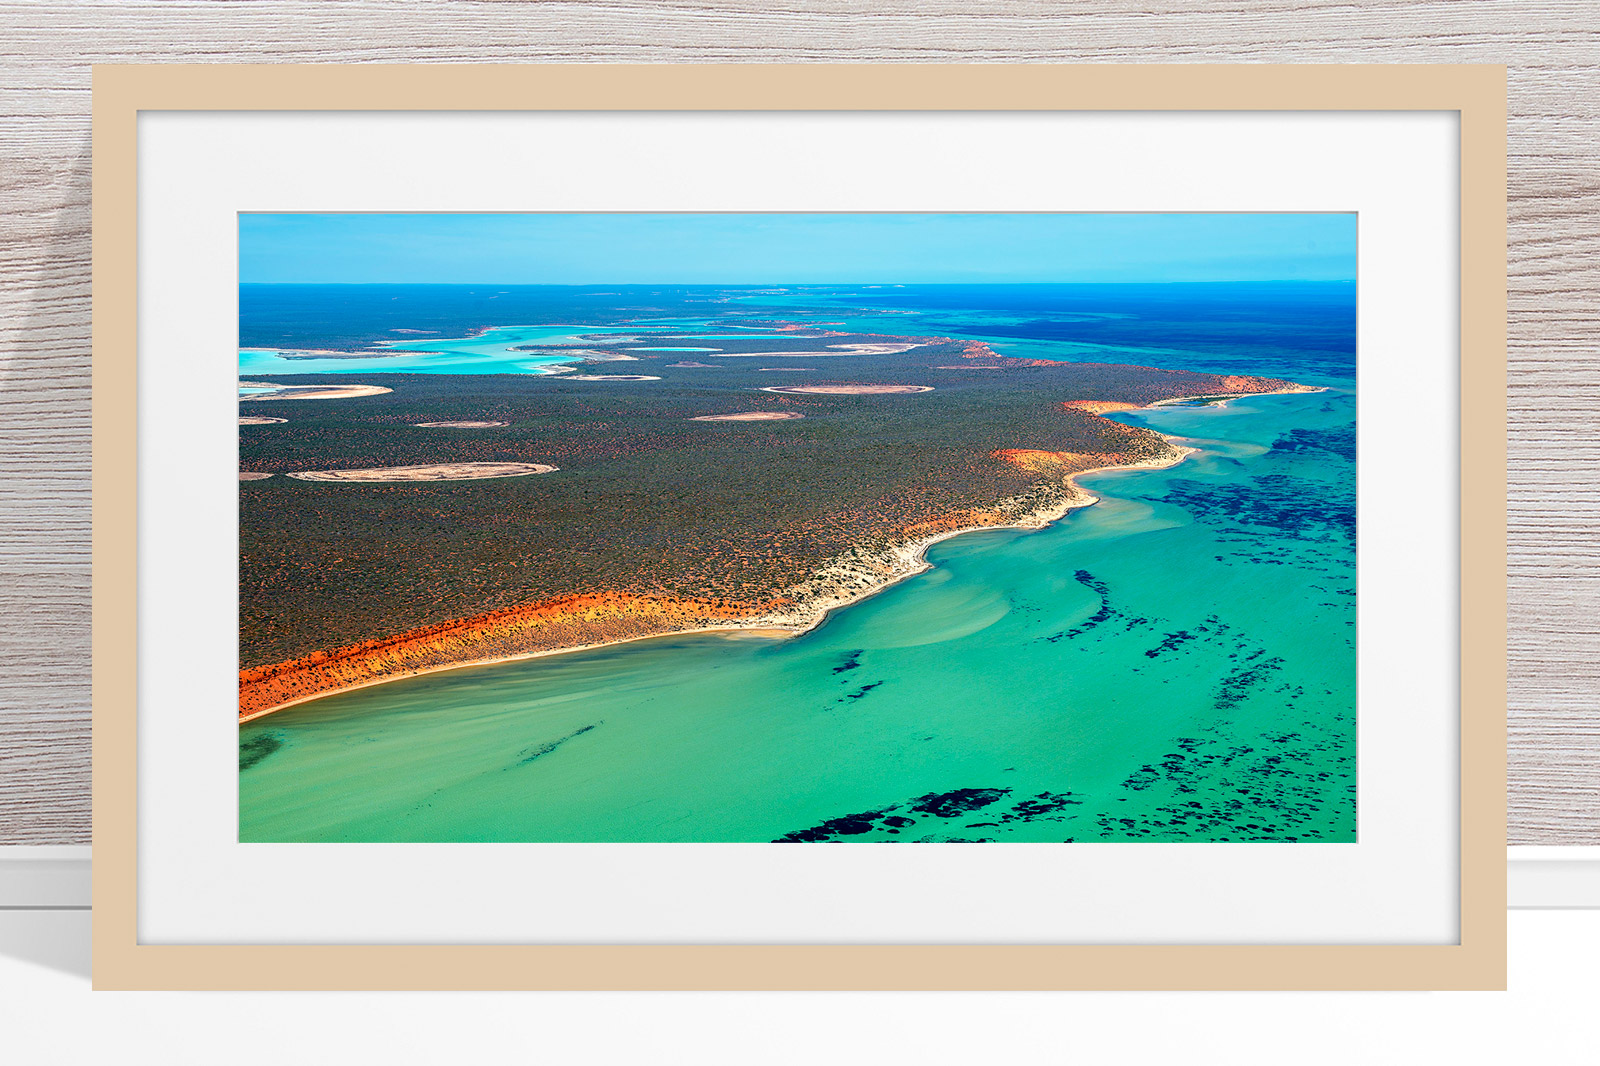 008 - Jason Mazur - 'Shark Bay Coastline' Light Frame